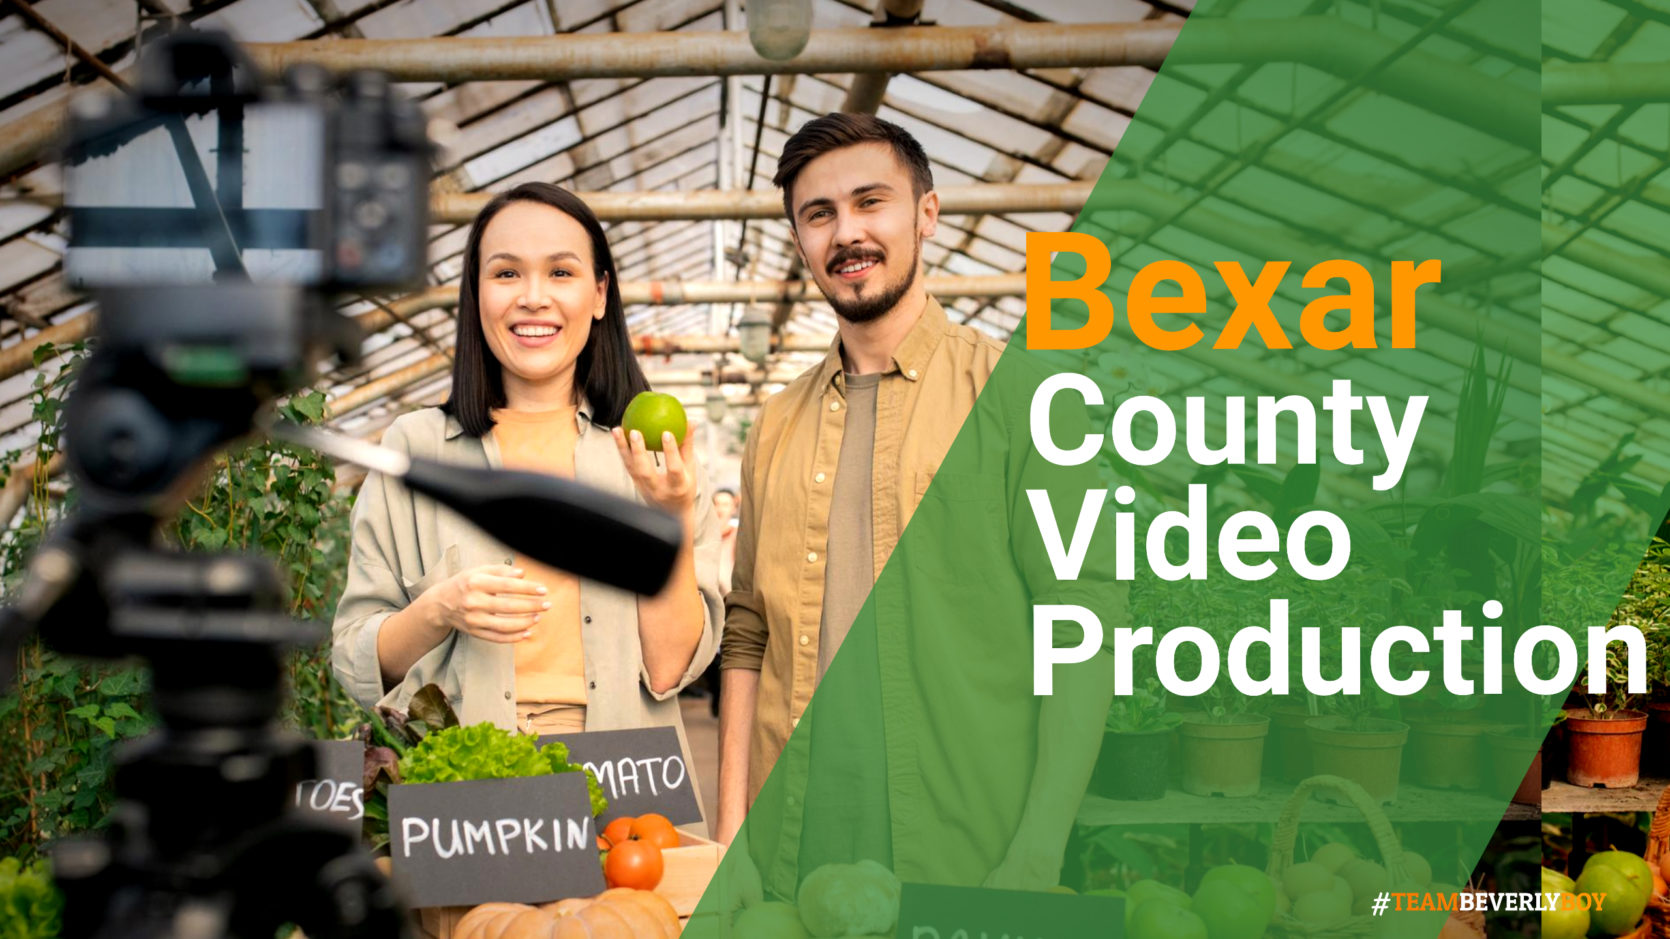 Bexar County video production